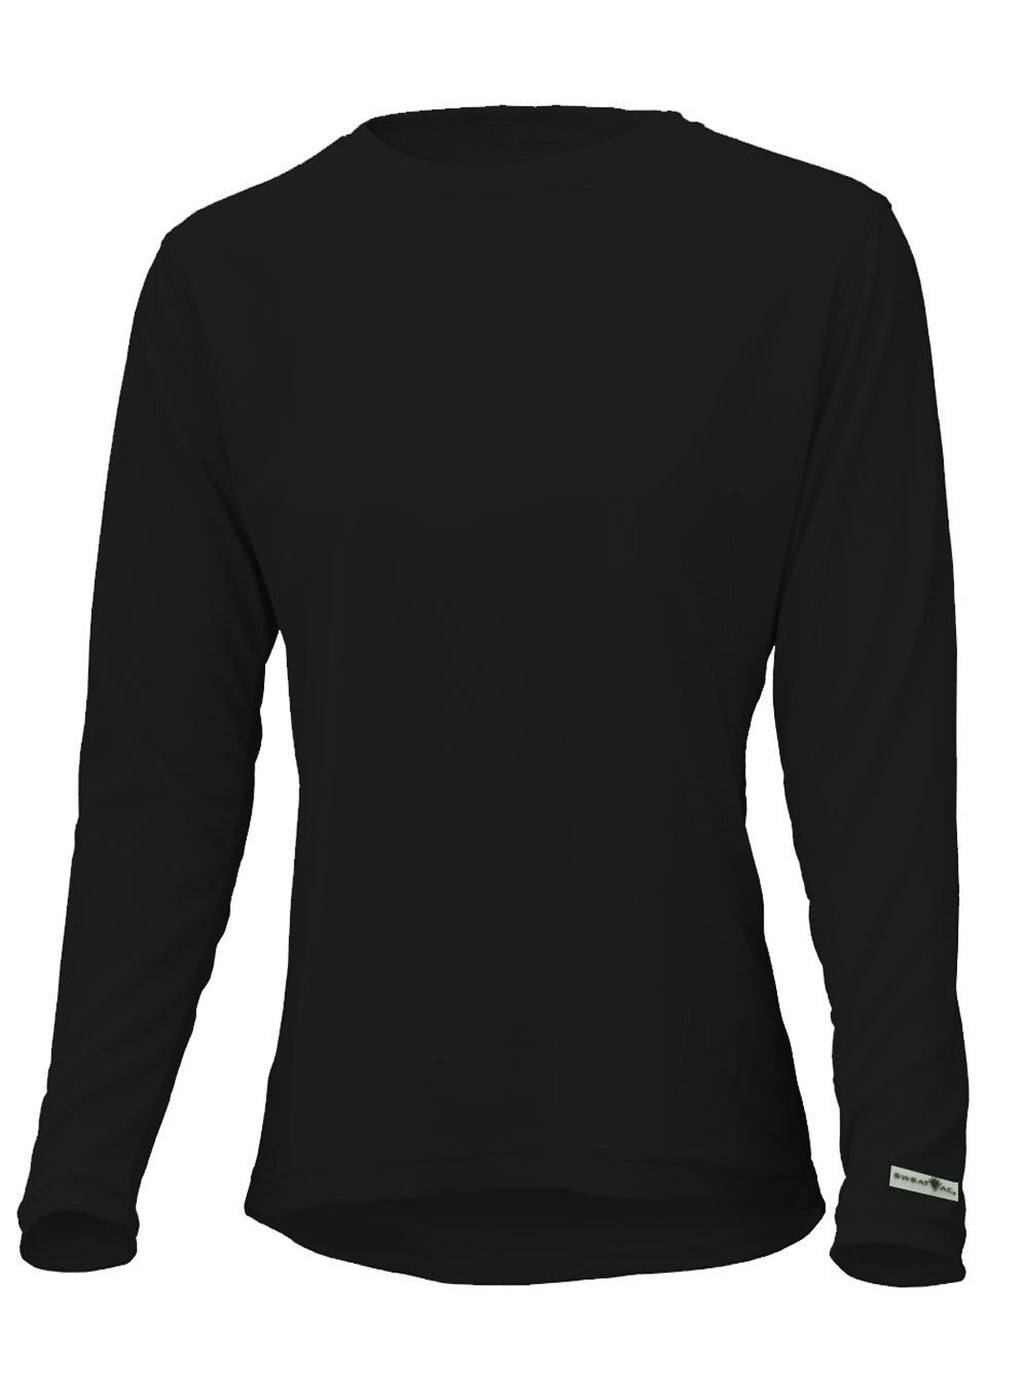 Women's Long Sleeve Race Shirt